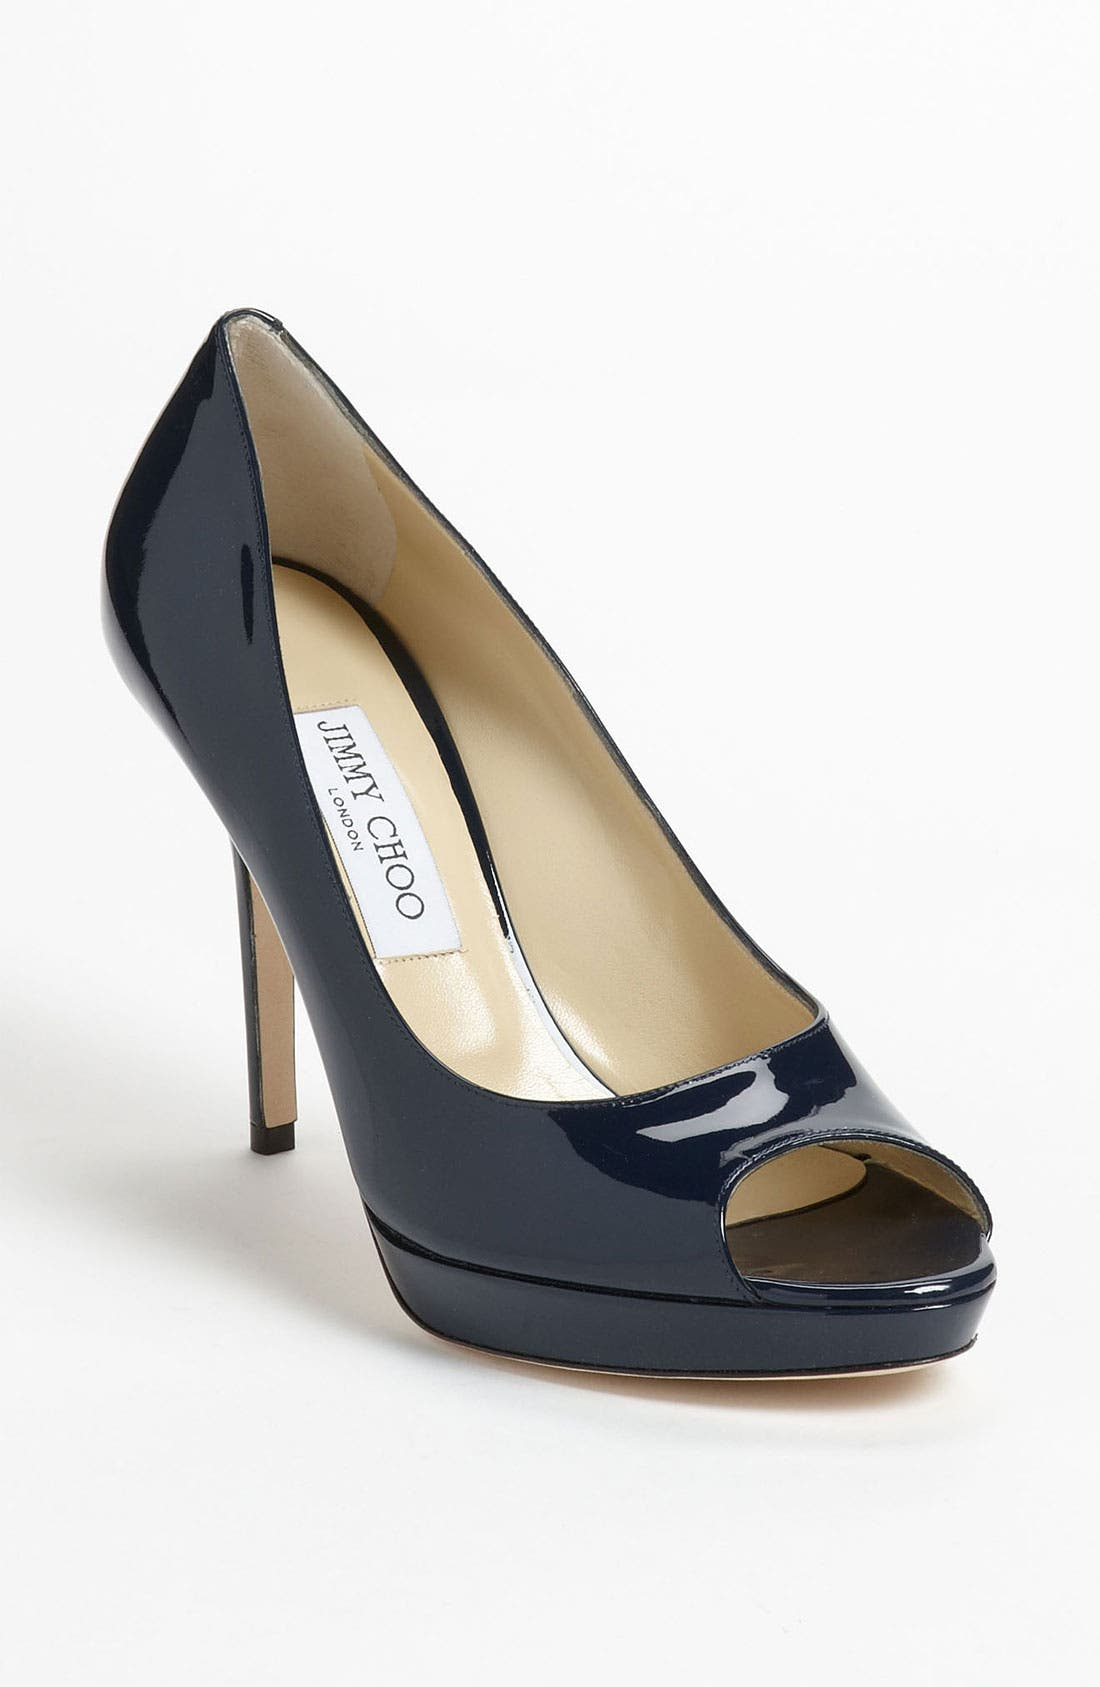 Alternate Image 1 Selected - Jimmy Choo 'Luna' Peep Toe Platform Pump (Women)